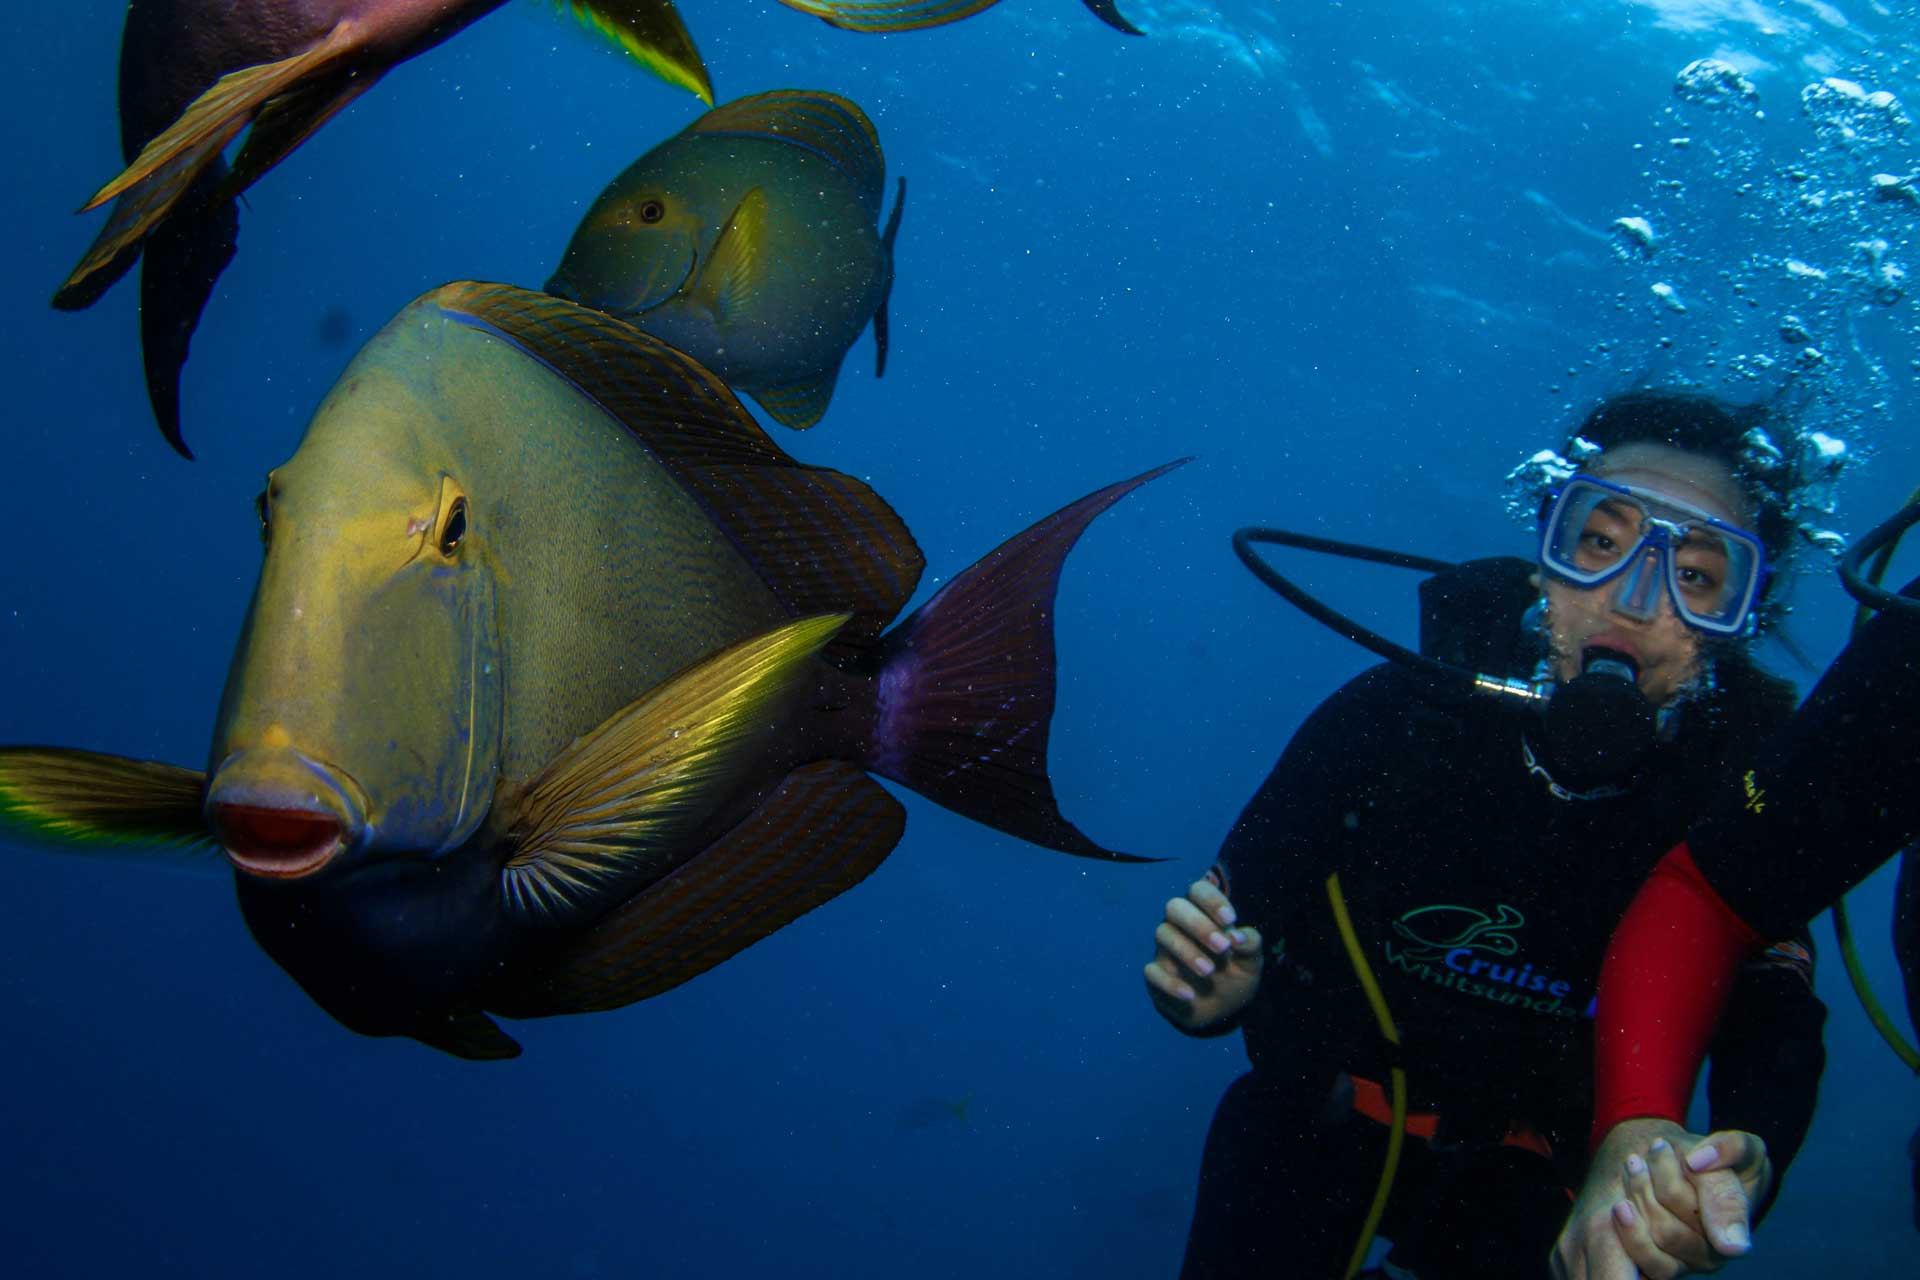 Scuba Diving with fishes at the Great Barrier Reef